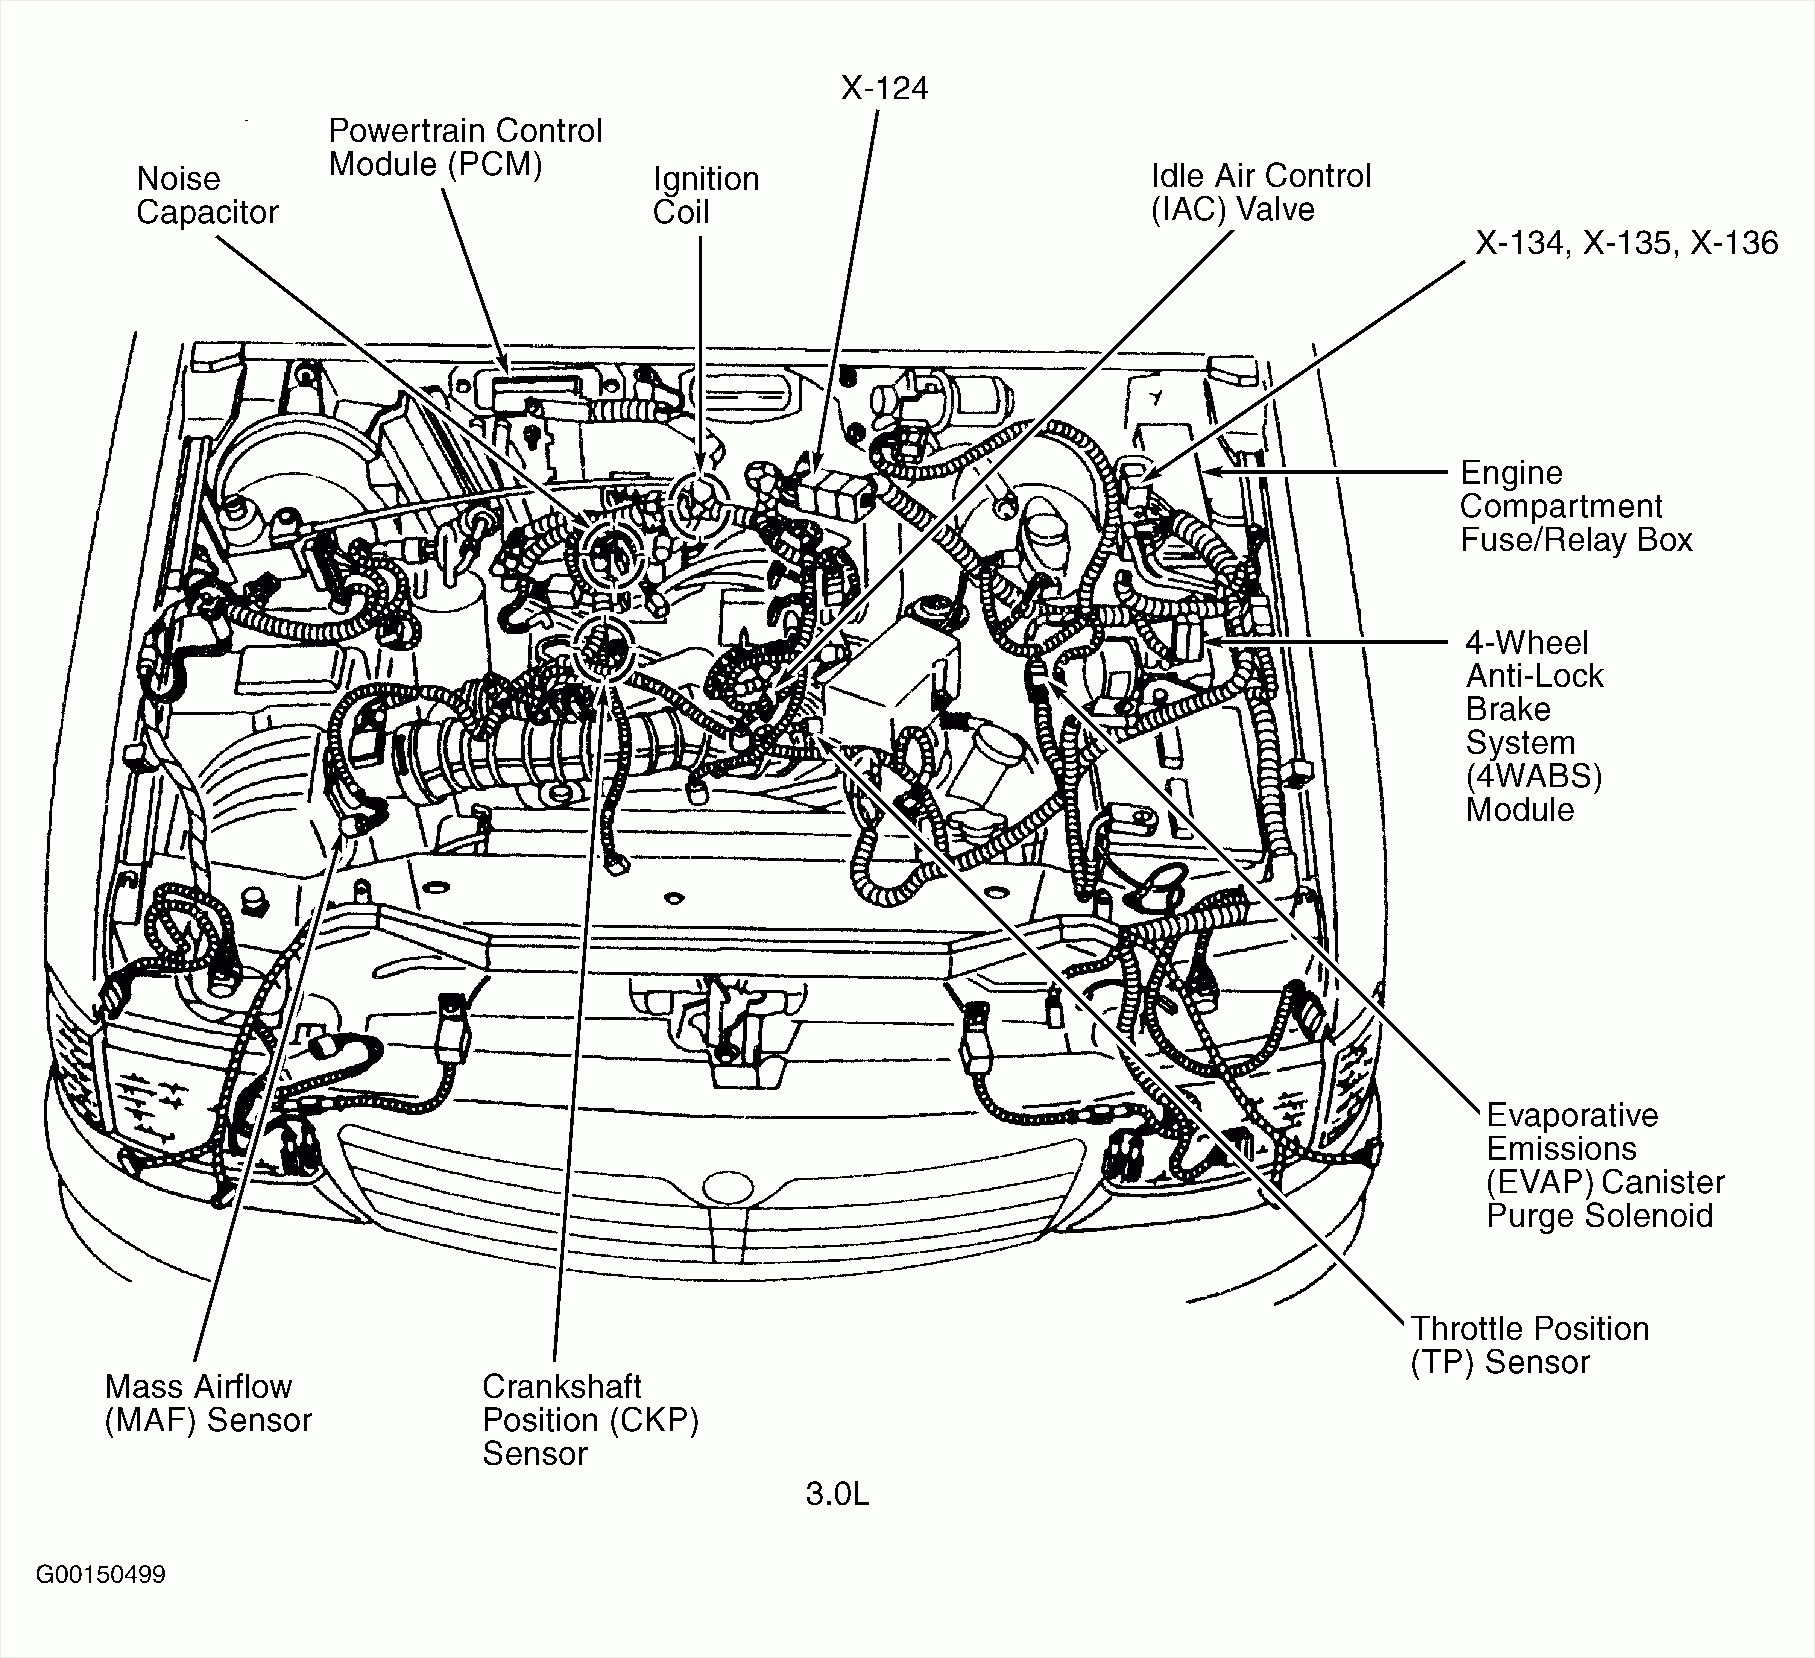 2012 Mazda 5 Engine Diagram Wiring Diagram Centre Centre Pavimentos Tarima Es